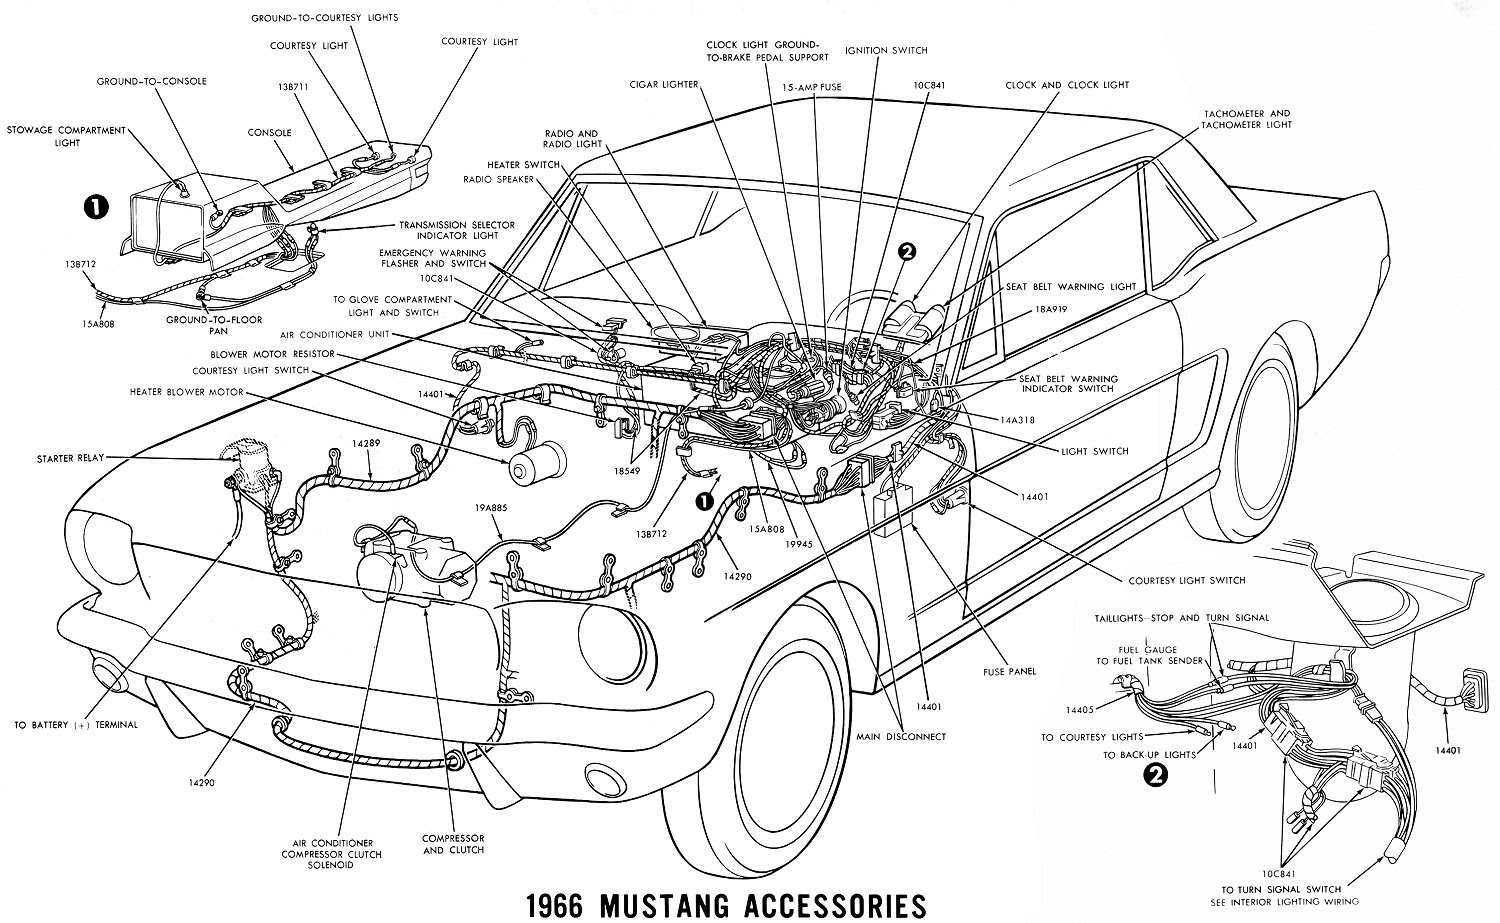 1969 Mustang Instrument Panel Wiring Diagram Wiring Diagram Report A Report A Maceratadoc It